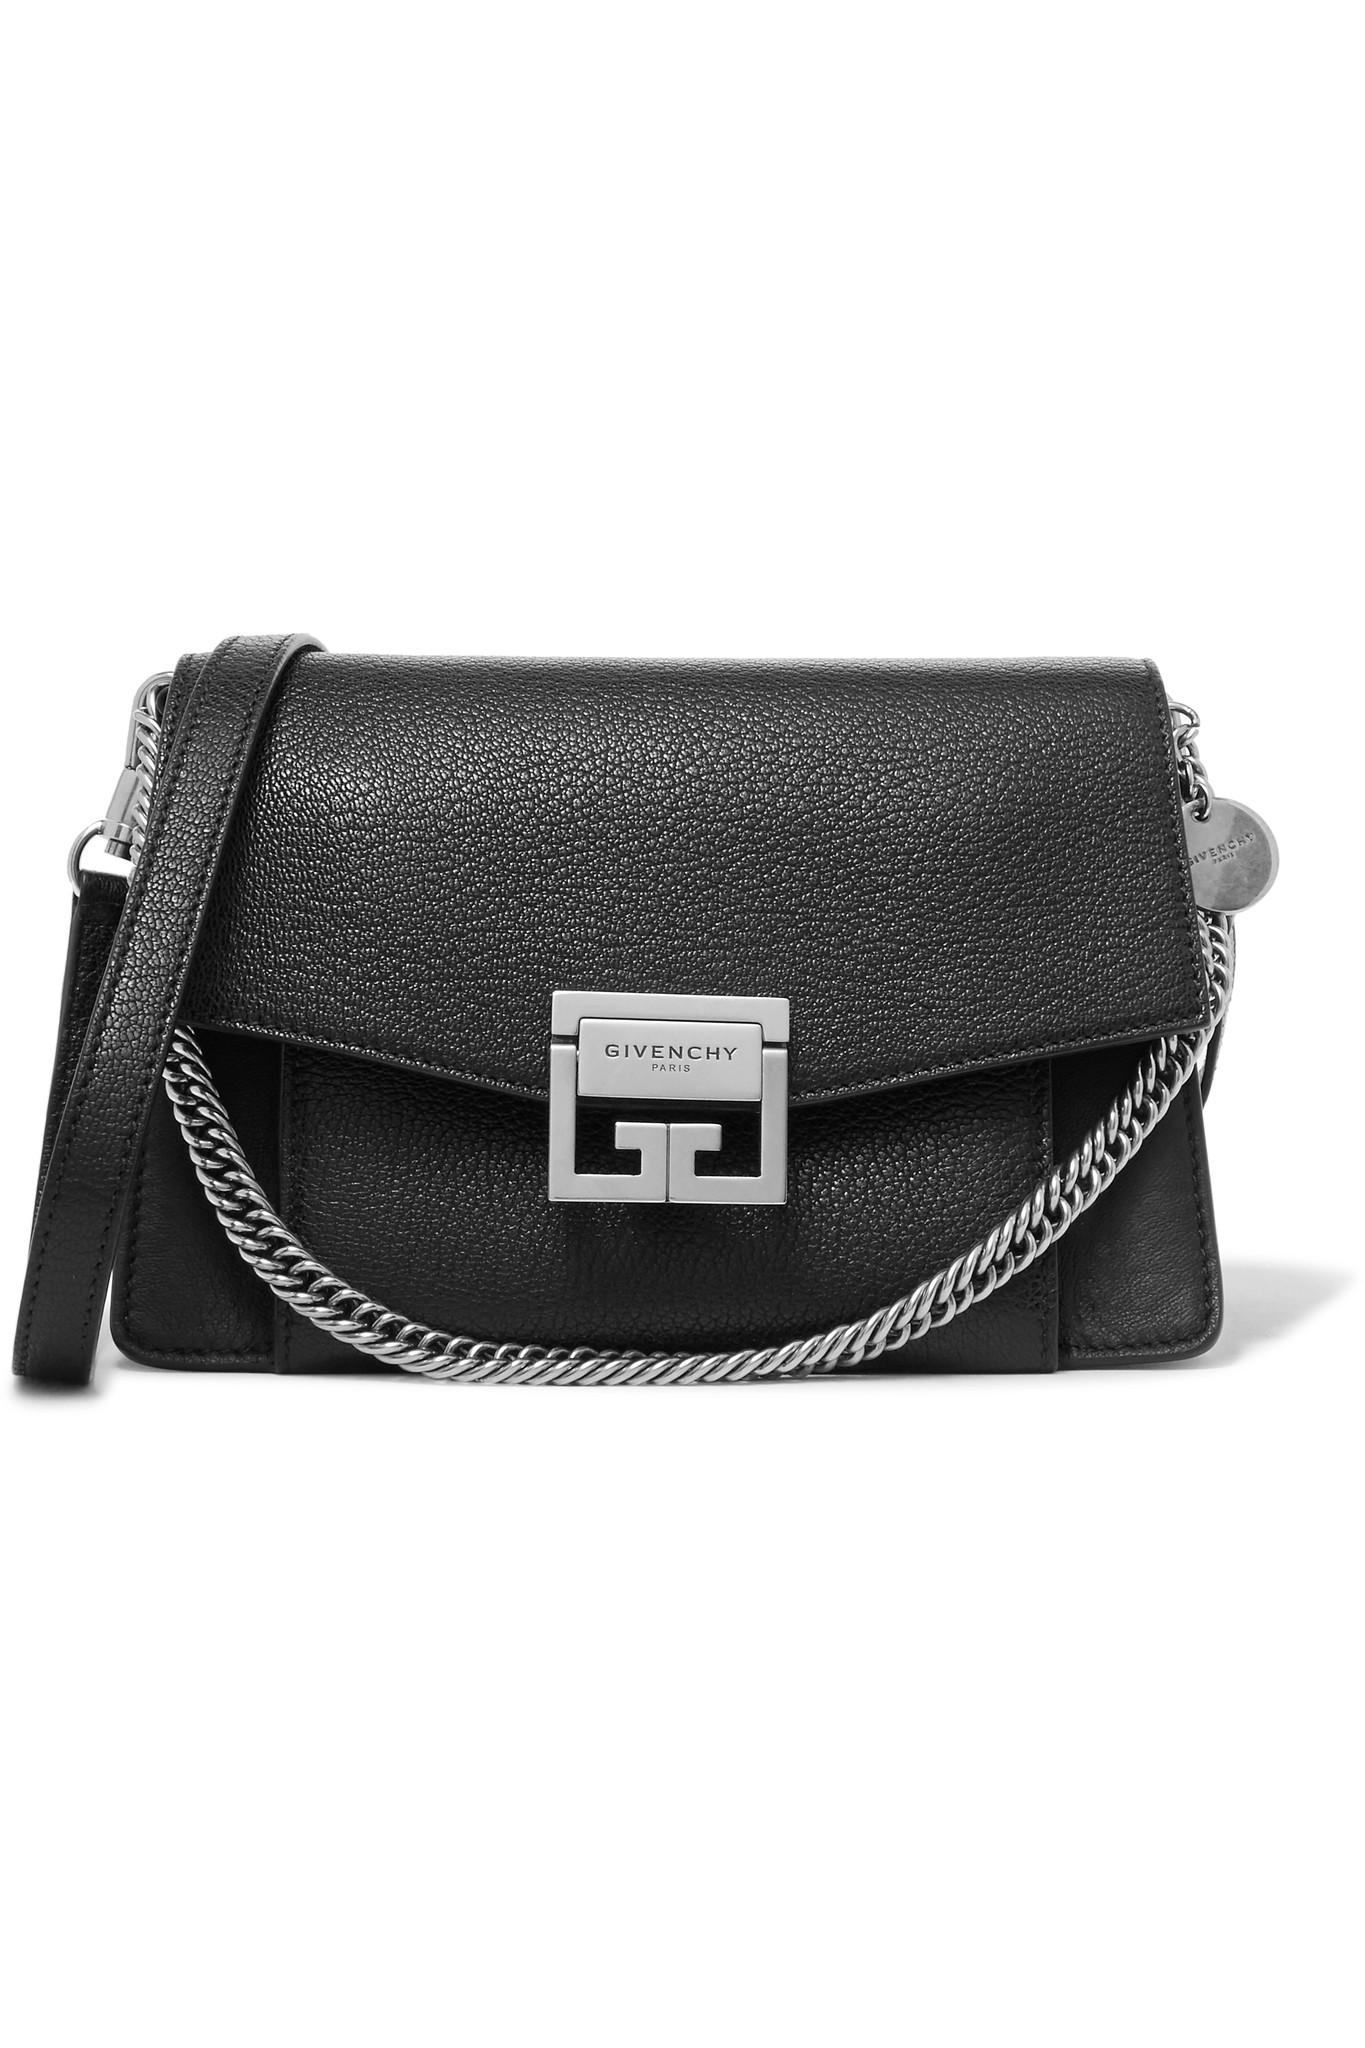 74216c5d2c32 Givenchy - Black Gv3 Small Textured-leather Shoulder Bag - Lyst. View  fullscreen